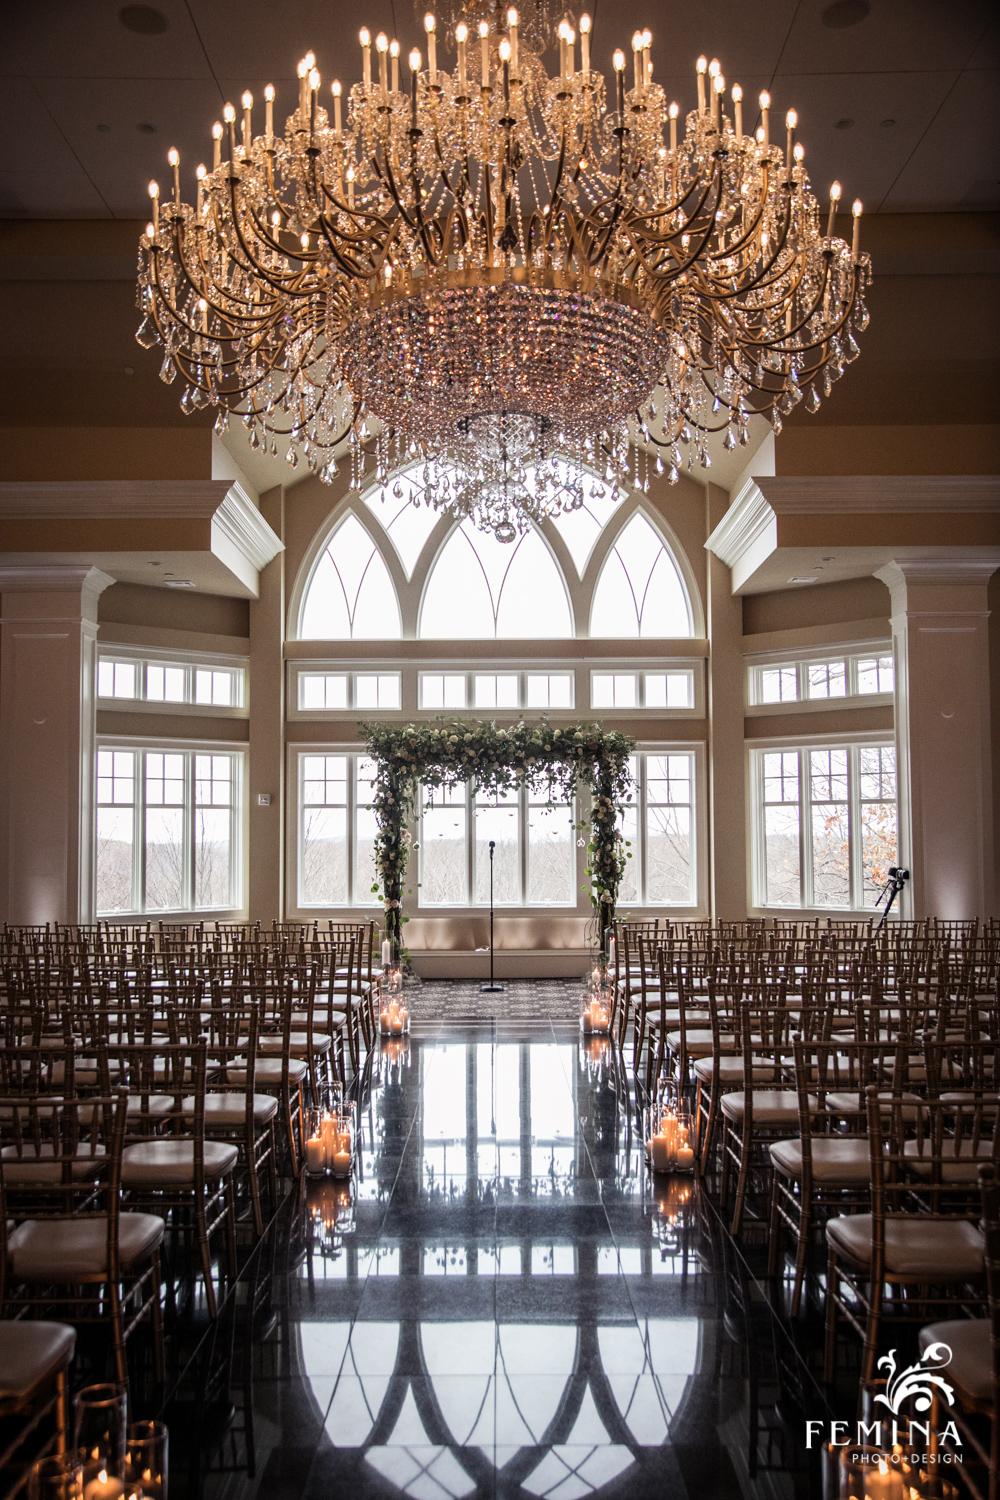 Jessica Keith Le Chateau Westchester Ny Wedding Photographer Femina Photo Design In 2020 Wedding Venues Westchester Ny Ny Wedding Venues Chateau Wedding Venue